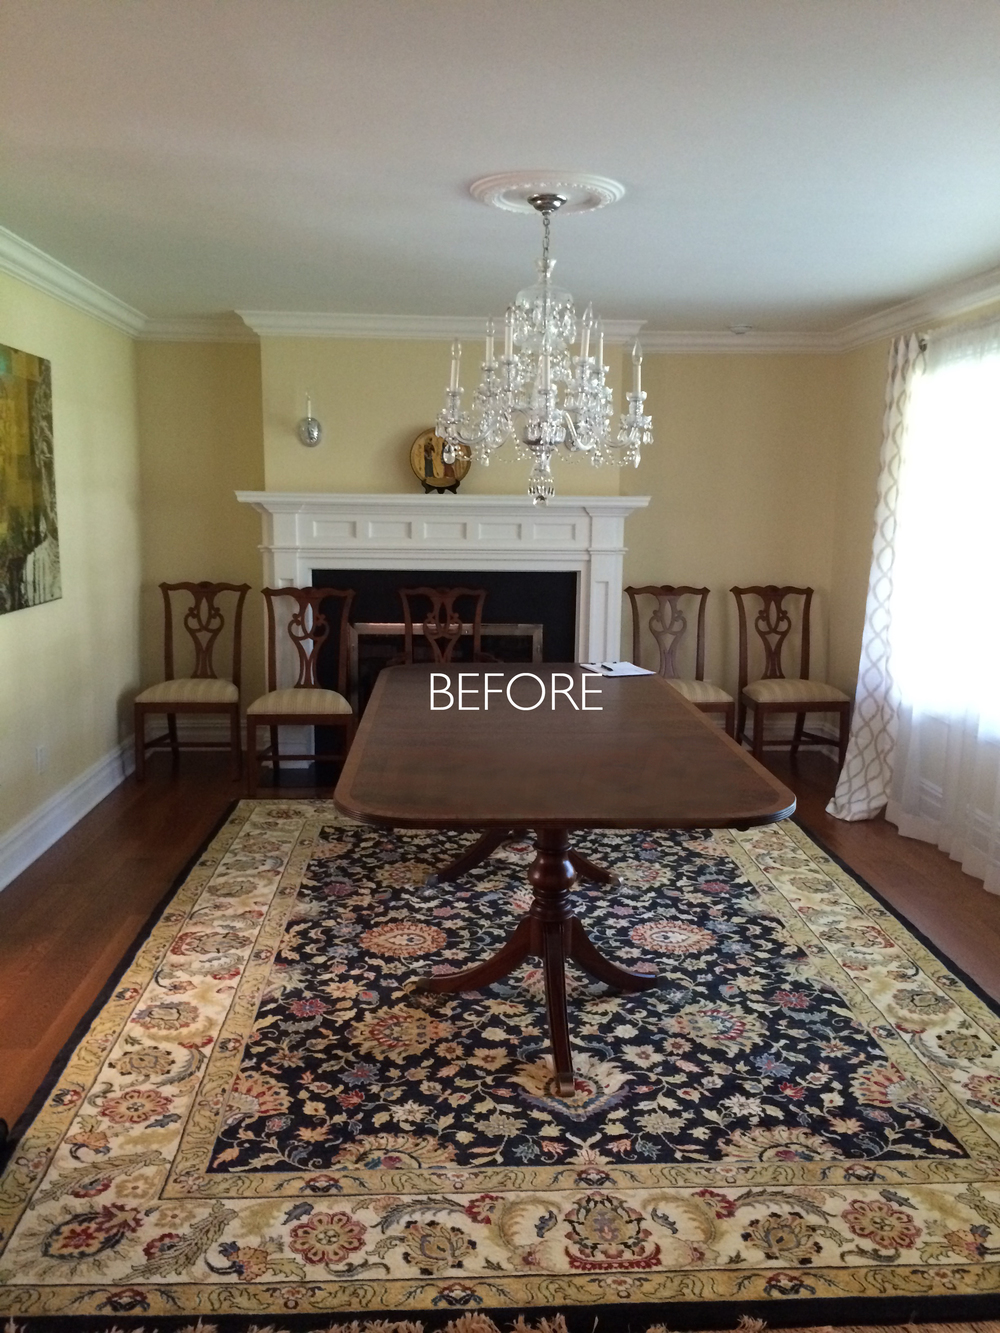 BEFORE Dining Room_Mamaroneck_2016.jpg